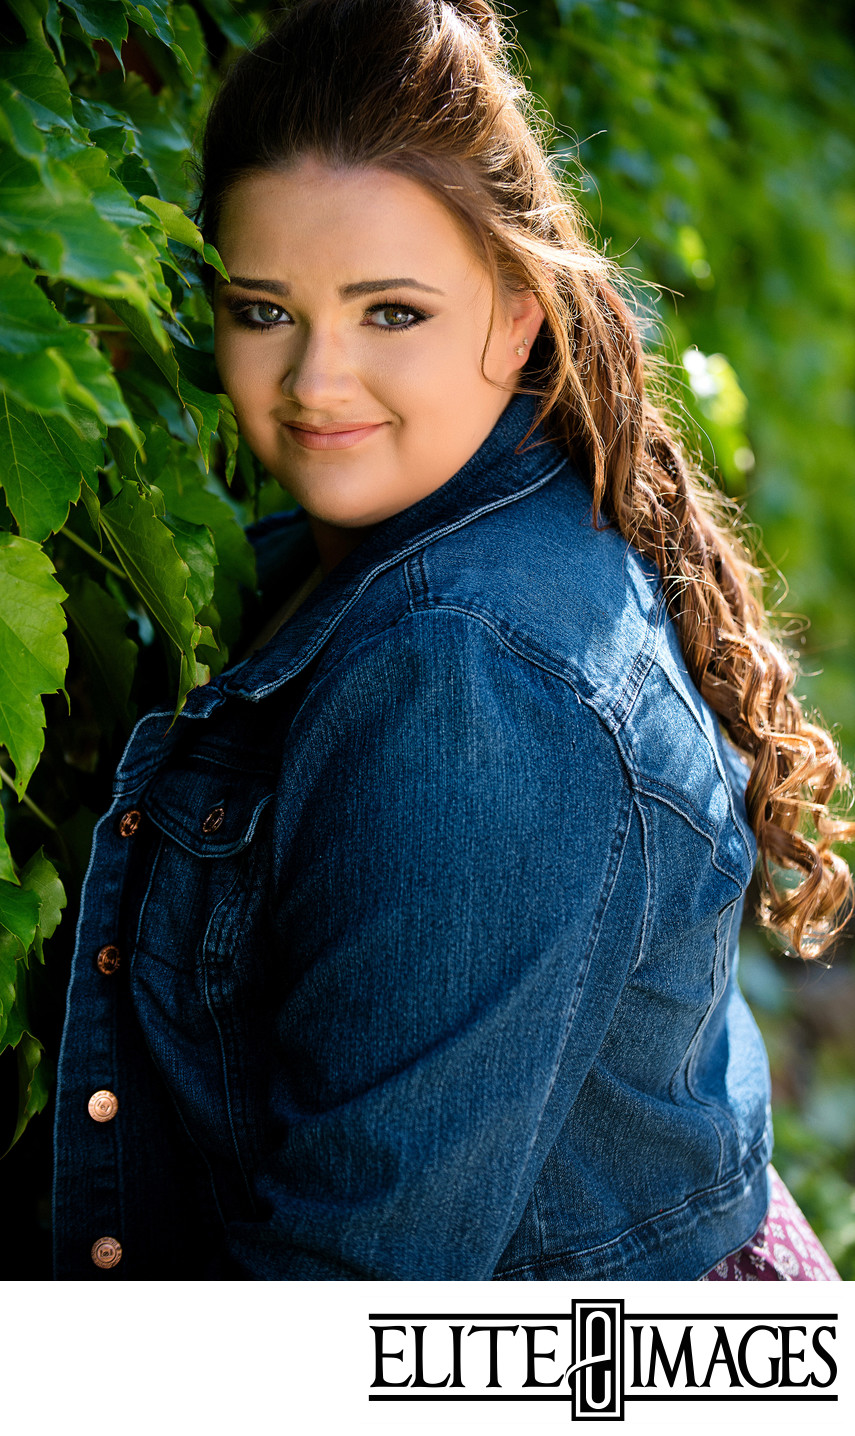 Cute Senior Portraits Dubuque Iowa